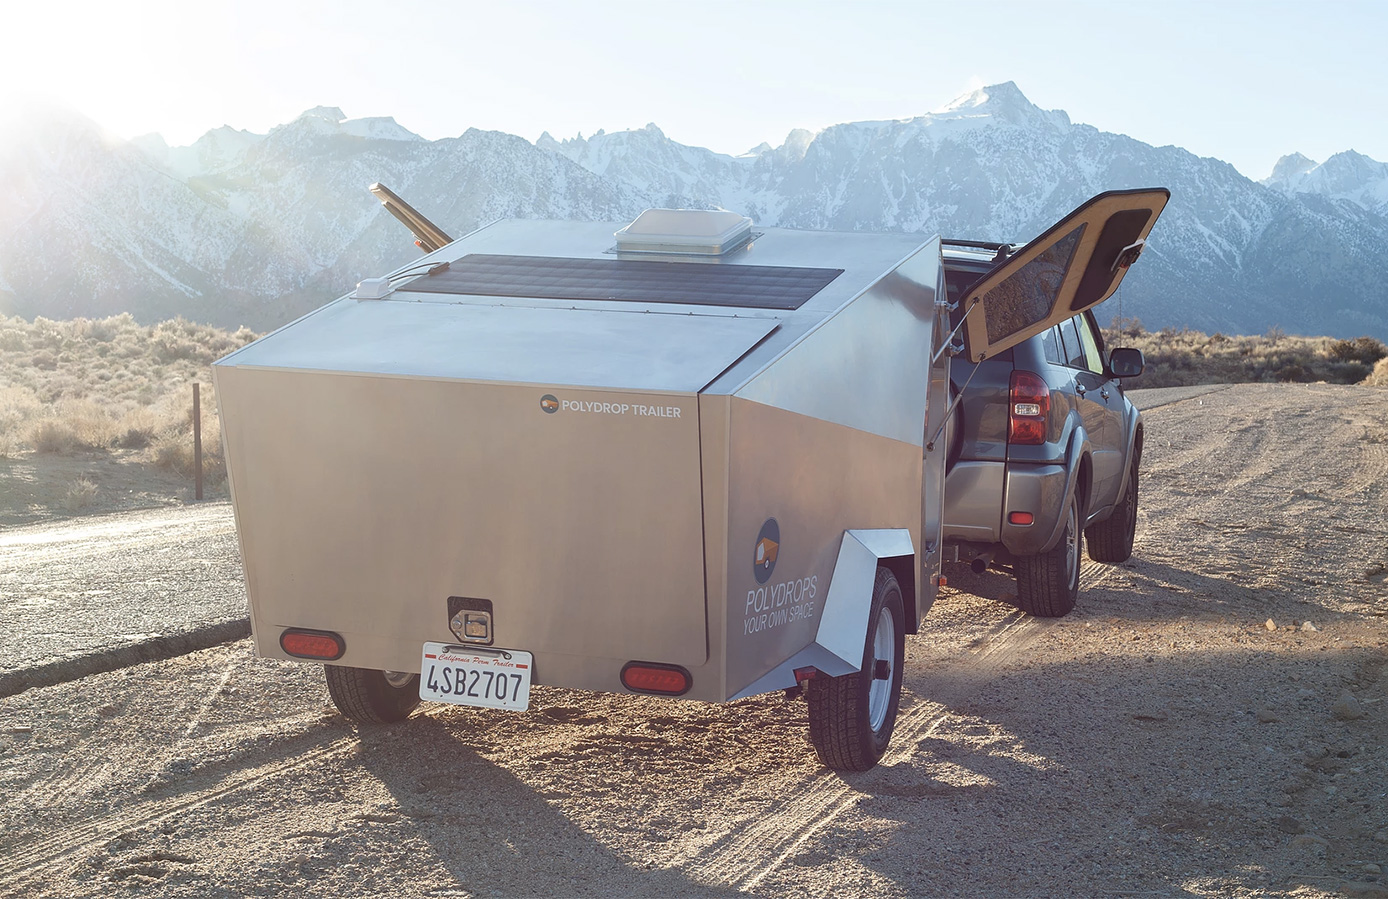 Is this the world's most minimal camper? The Polydrop cabin has pine interiors and a lightweight aluminium shell